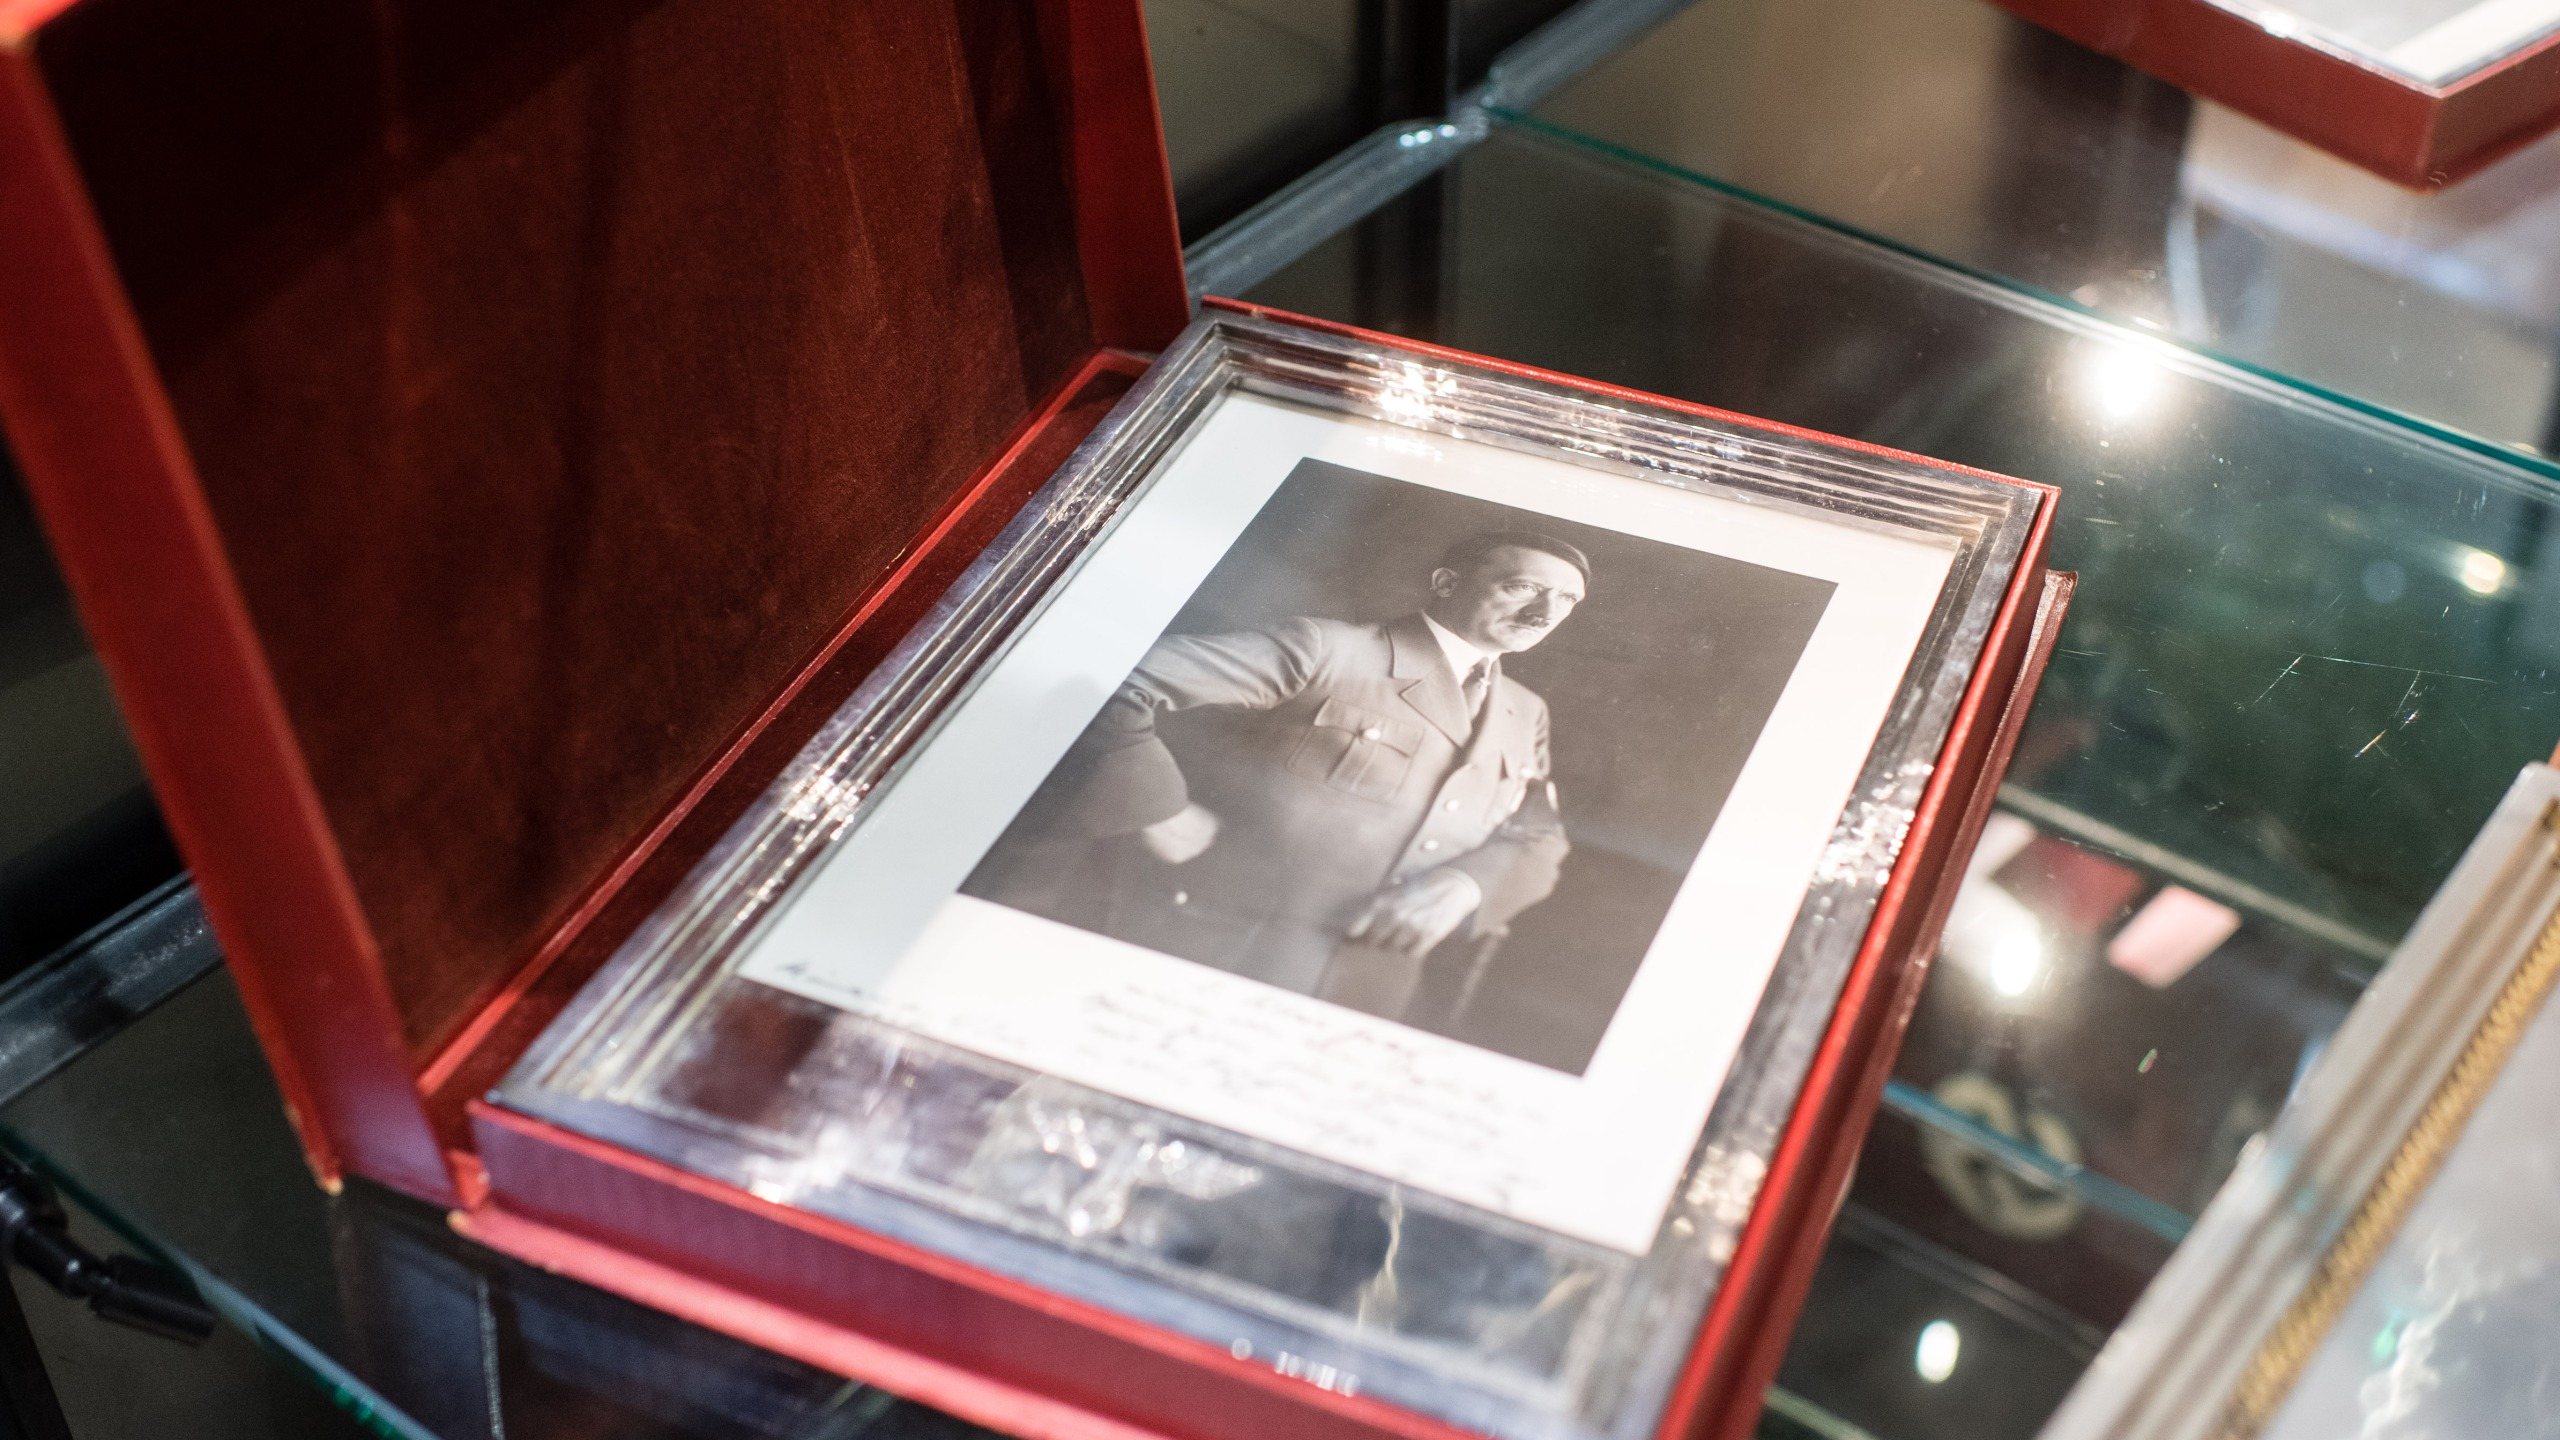 A framed portrait of Adolf Hitler is pictured on Nov. 20, 2019 at the Hermann Historica auction house in Grasbrunn near Munich, southern Germany, prior to an auction of personal belongings from German dictator Adolf Hitler and other notorious World War II Nazi leaders. (MATTHIAS BALK/dpa/AFP via Getty Images)